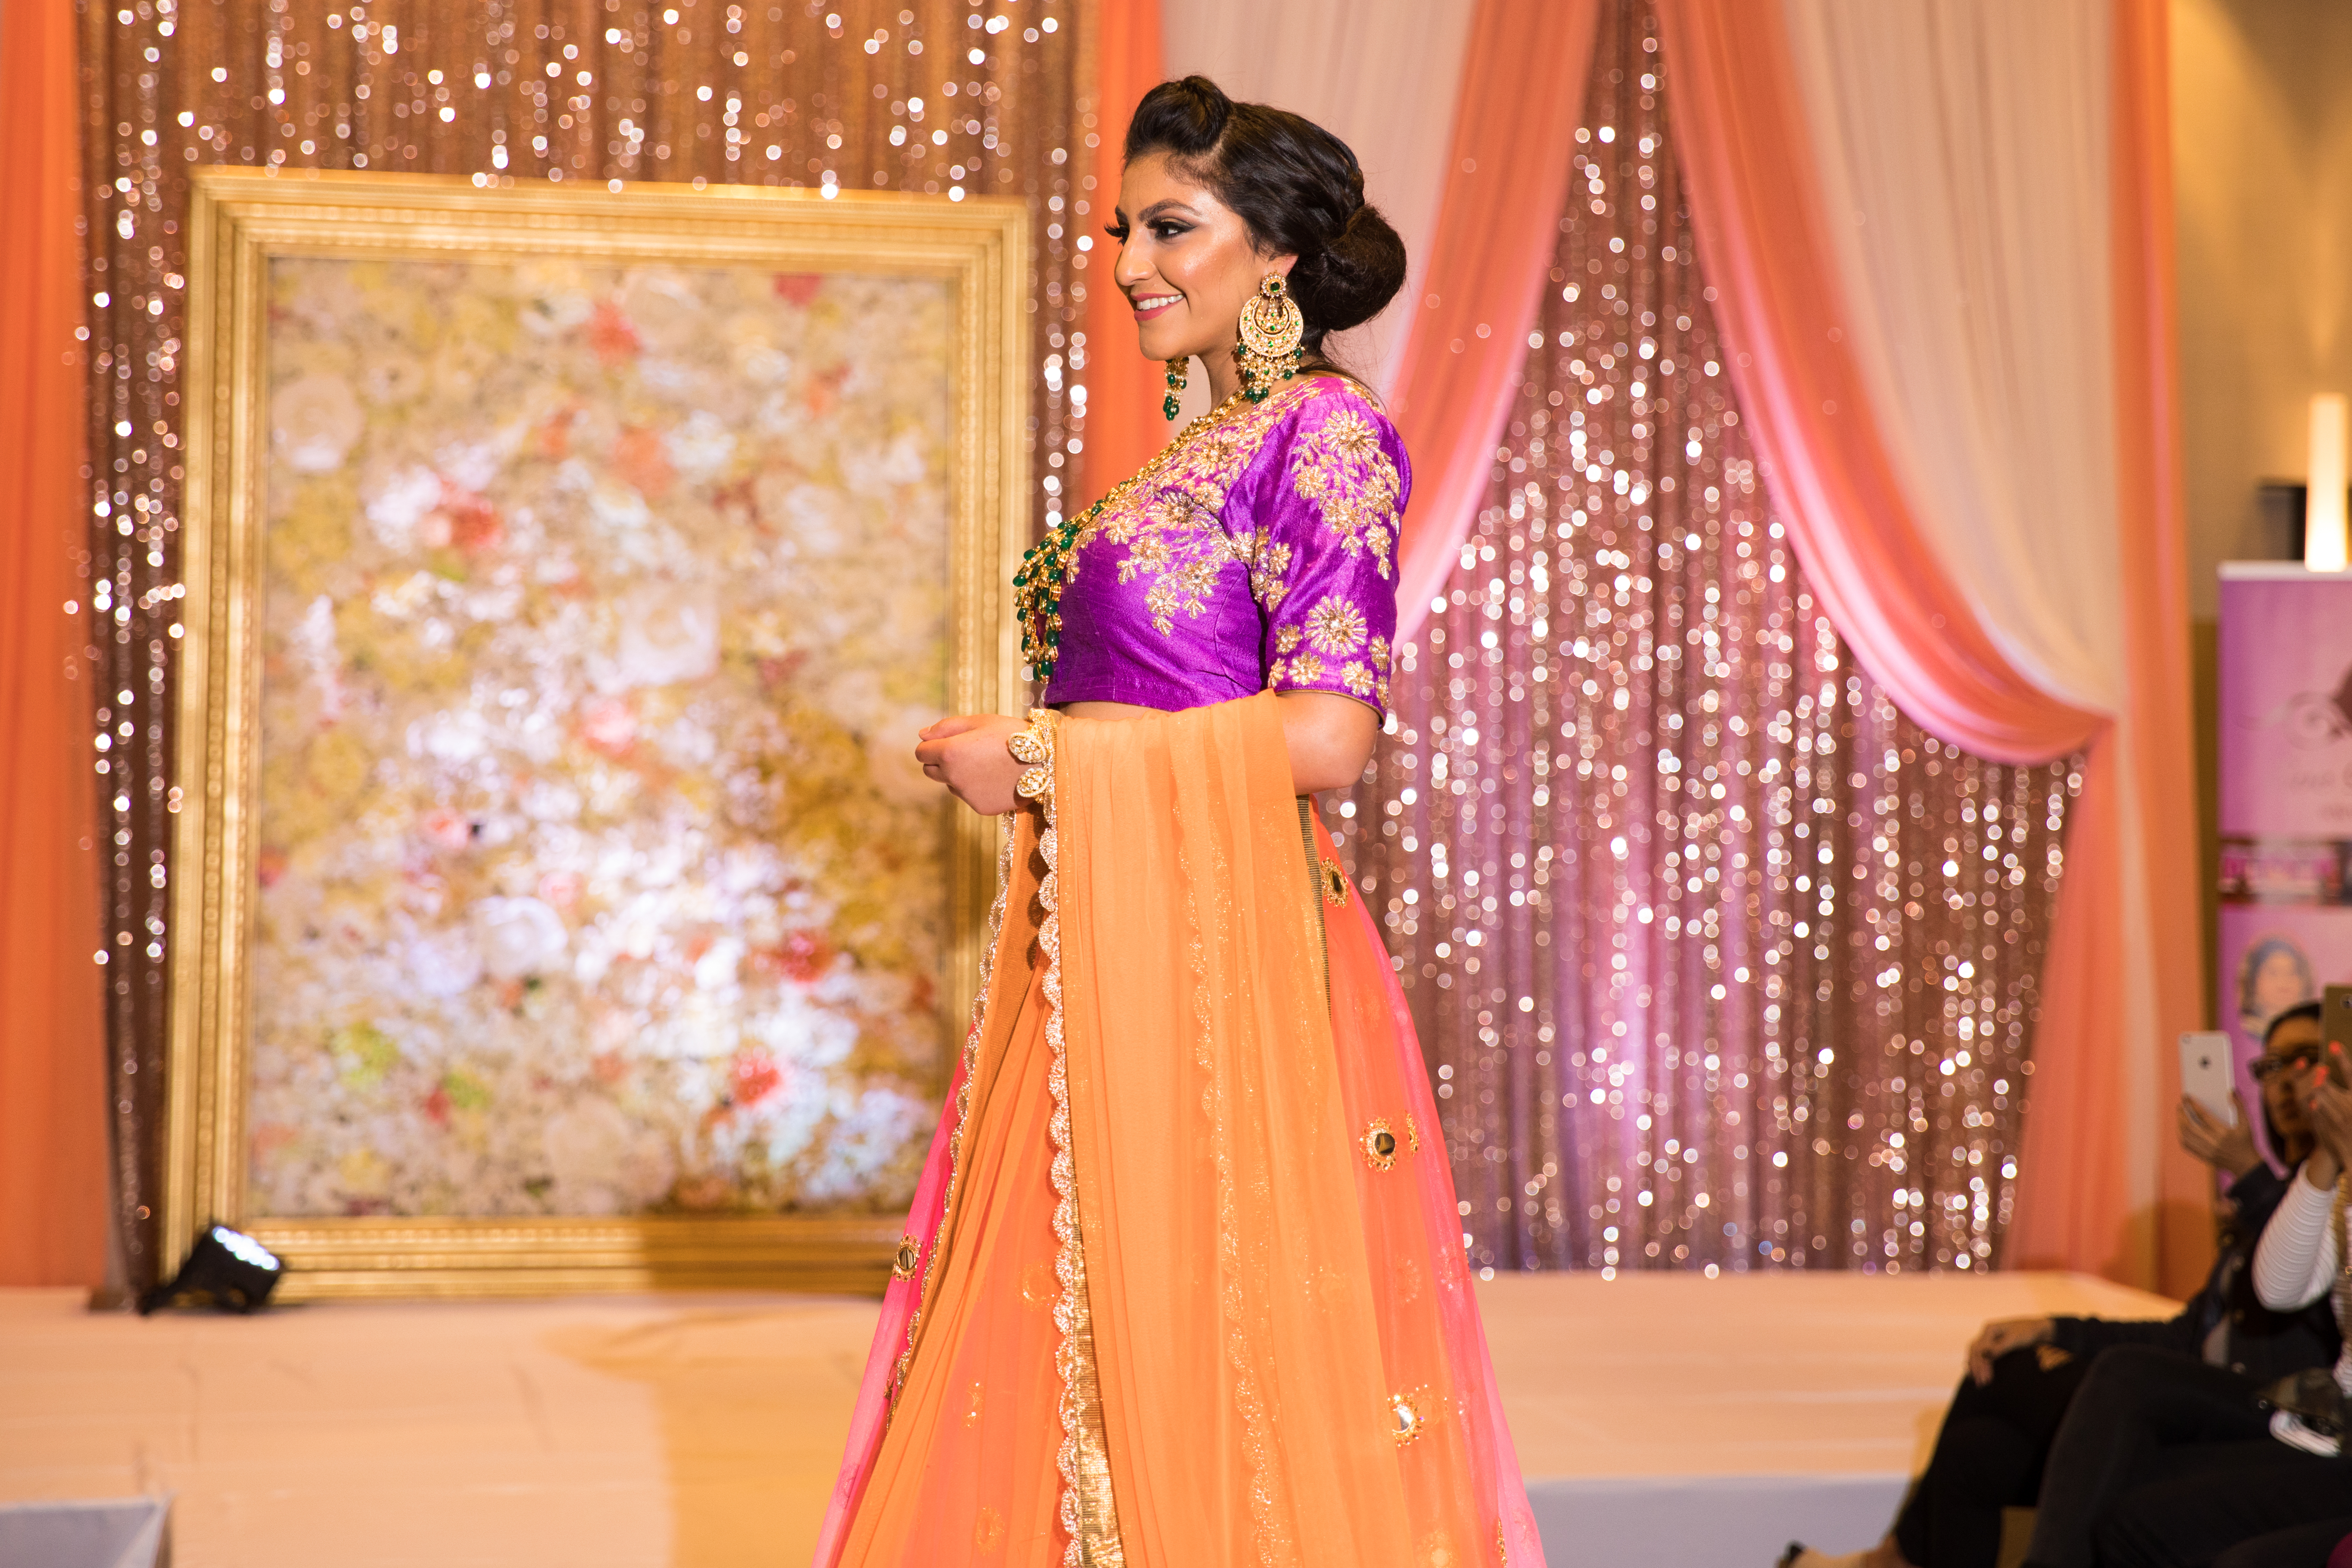 sf-bayarea-indian-wedding-bridal-show-photographer-edcarlogarcia-B35A1931